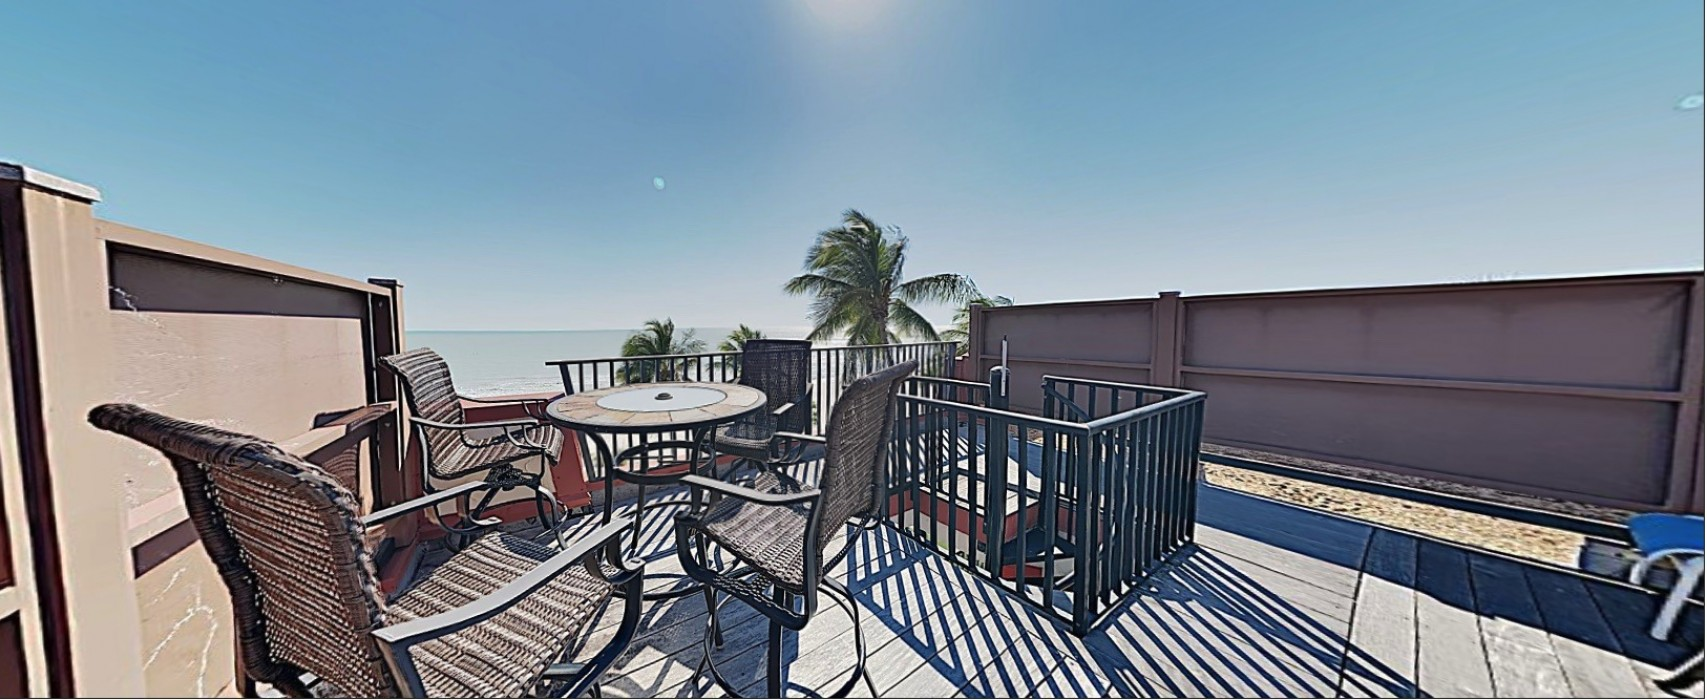 E45: View of the Private Sundeck. 4 Sun loungers and a Bar Table with 4 Chairs